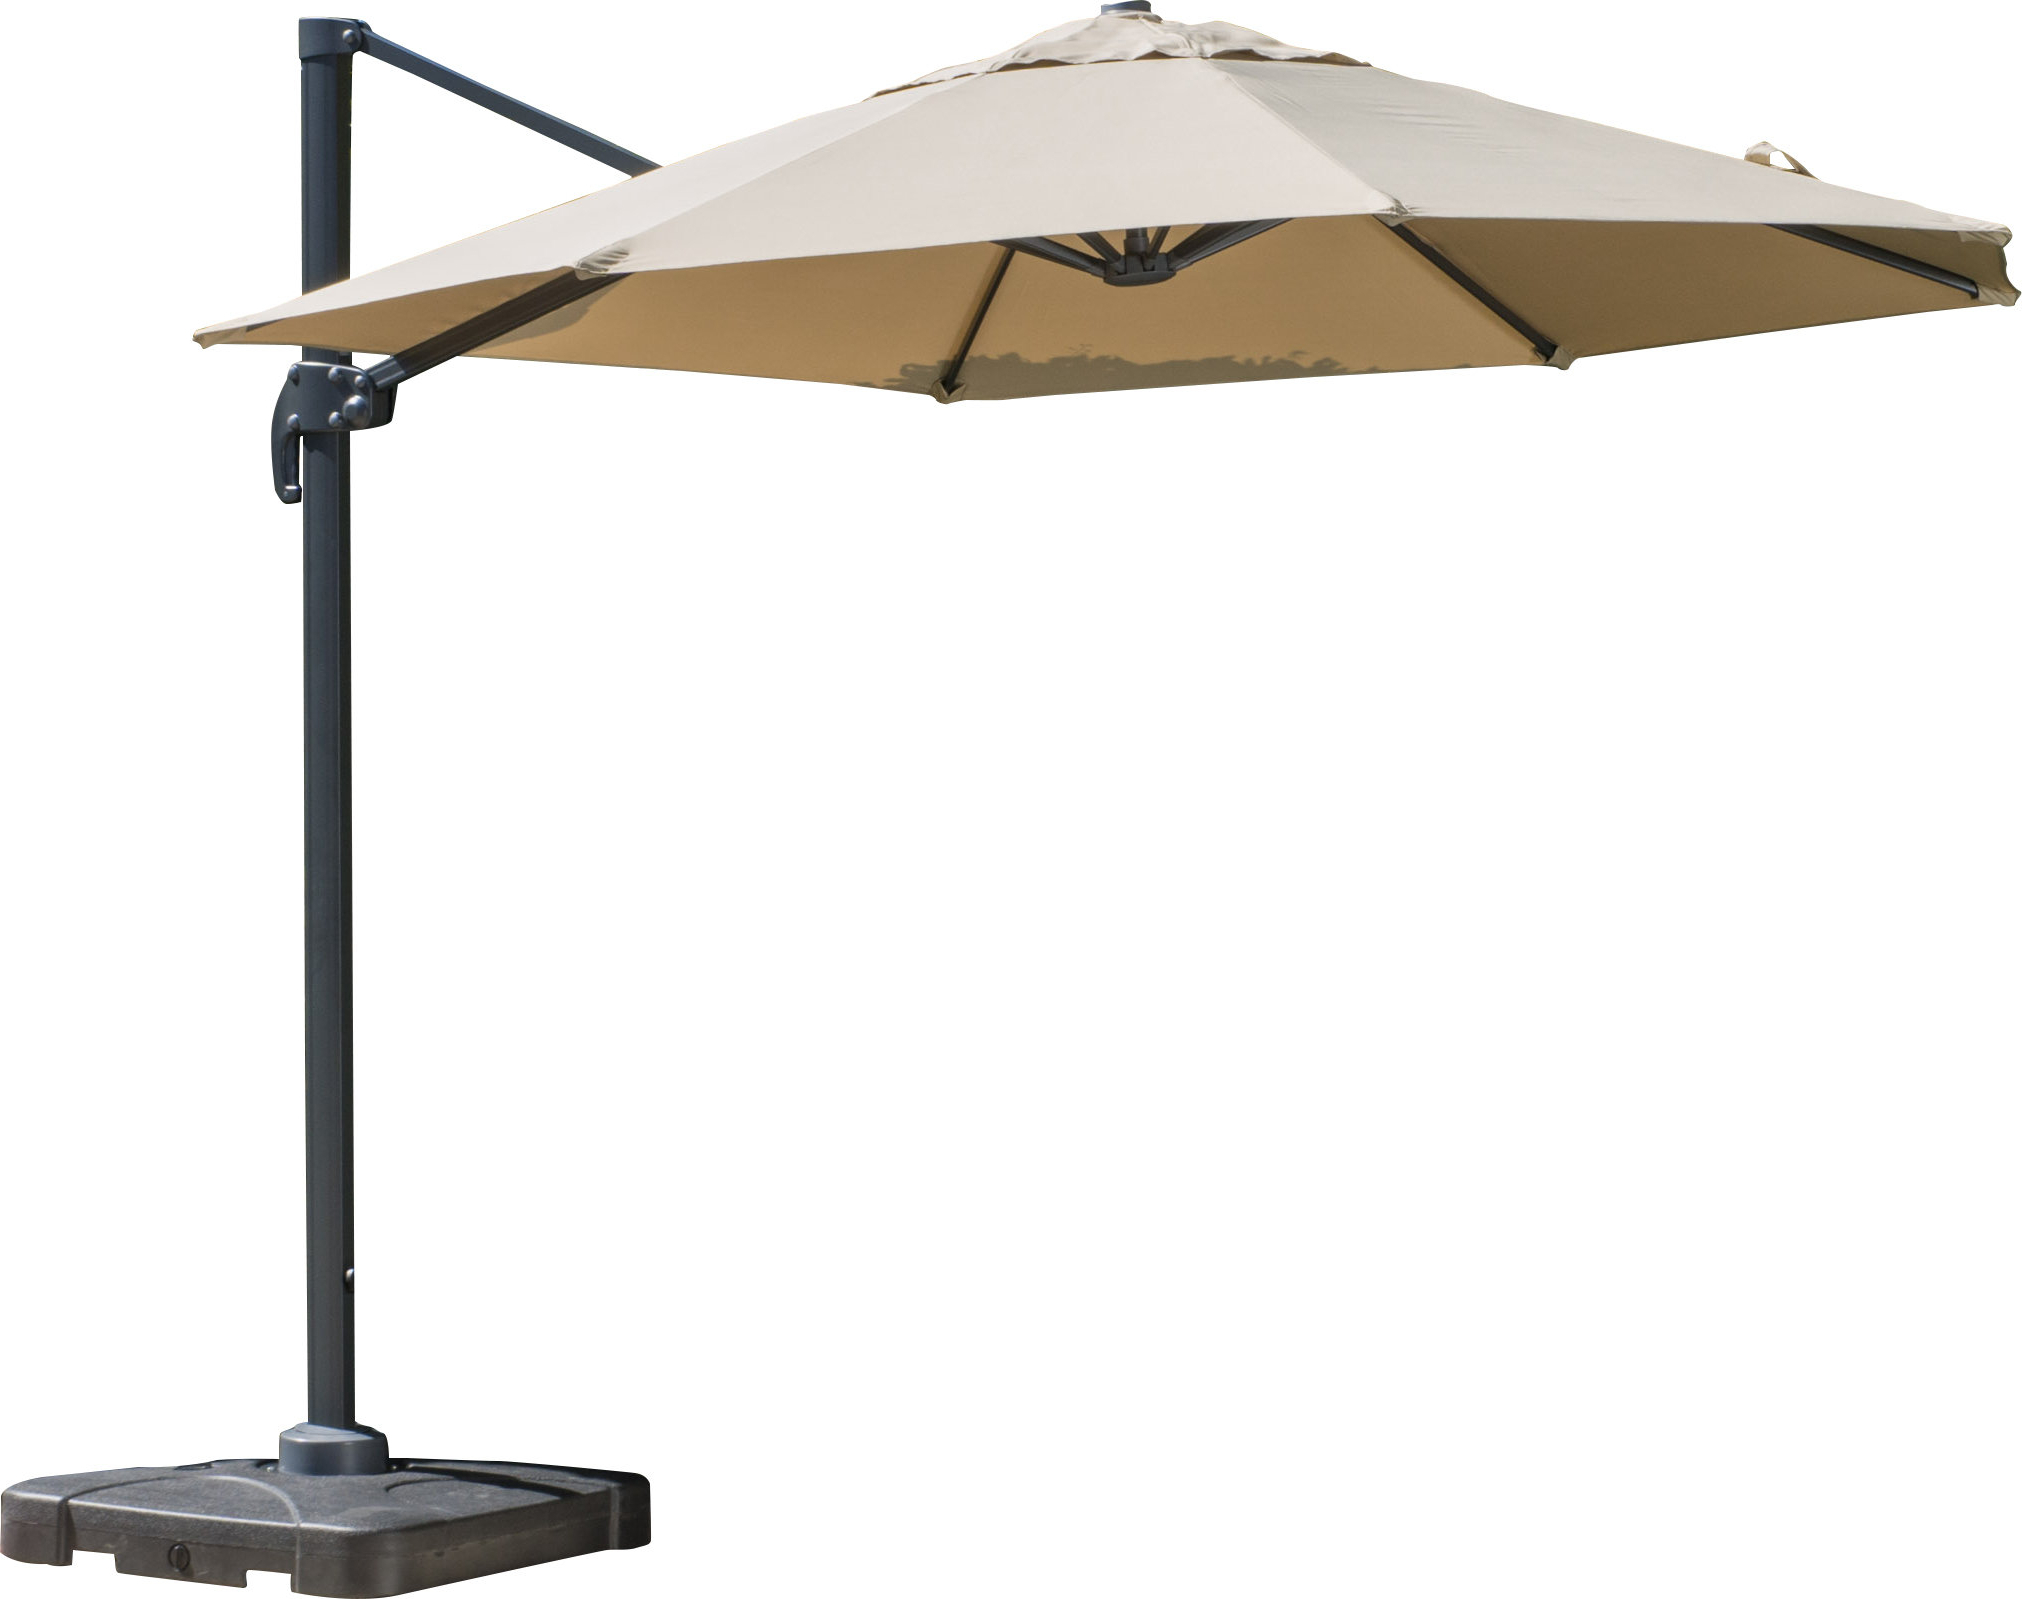 Bellana Cantilever Umbrella Throughout Widely Used Gemmenne Square Cantilever Umbrellas (View 9 of 20)